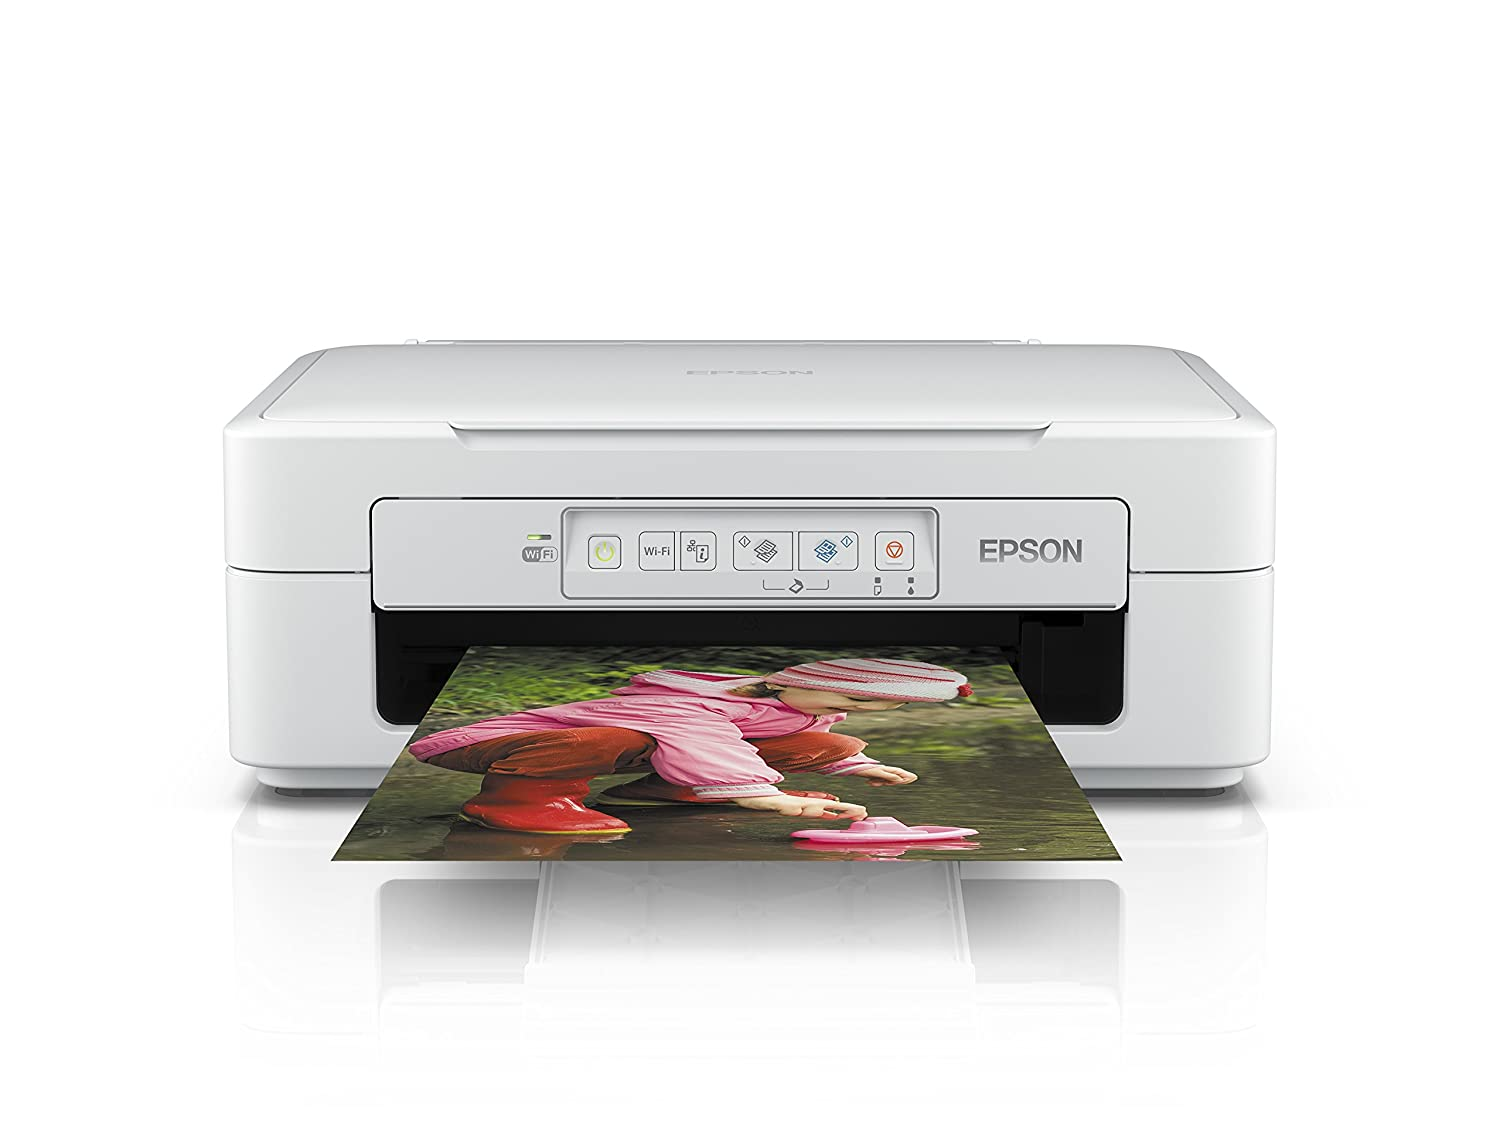 Epson Expression Home XP-247 - -: Amazon.es: Informática